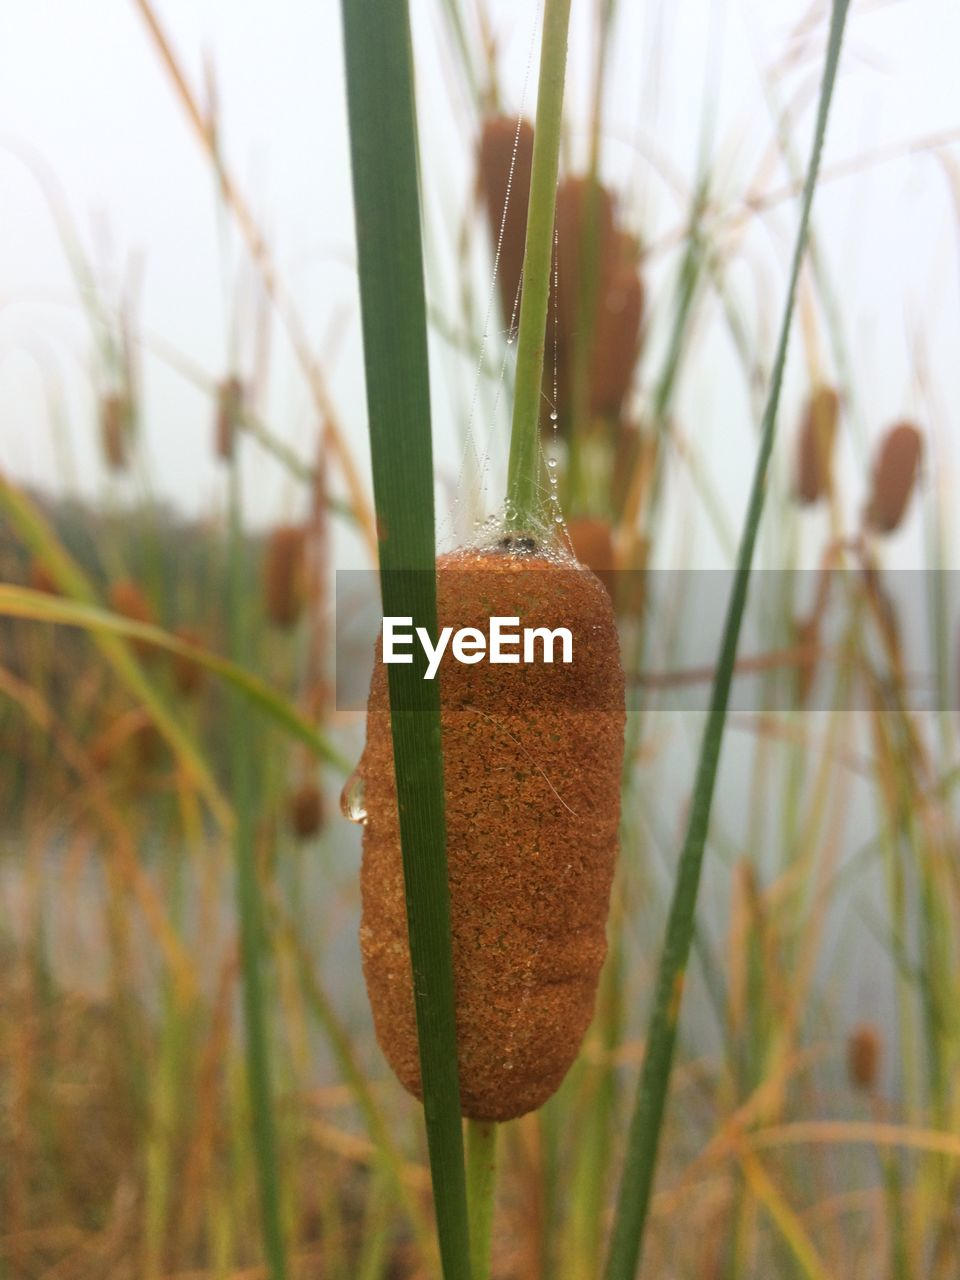 plant, growth, focus on foreground, close-up, no people, nature, beauty in nature, day, grass, land, tranquility, selective focus, green color, field, outdoors, brown, cattail, plant stem, food, freshness, blade of grass